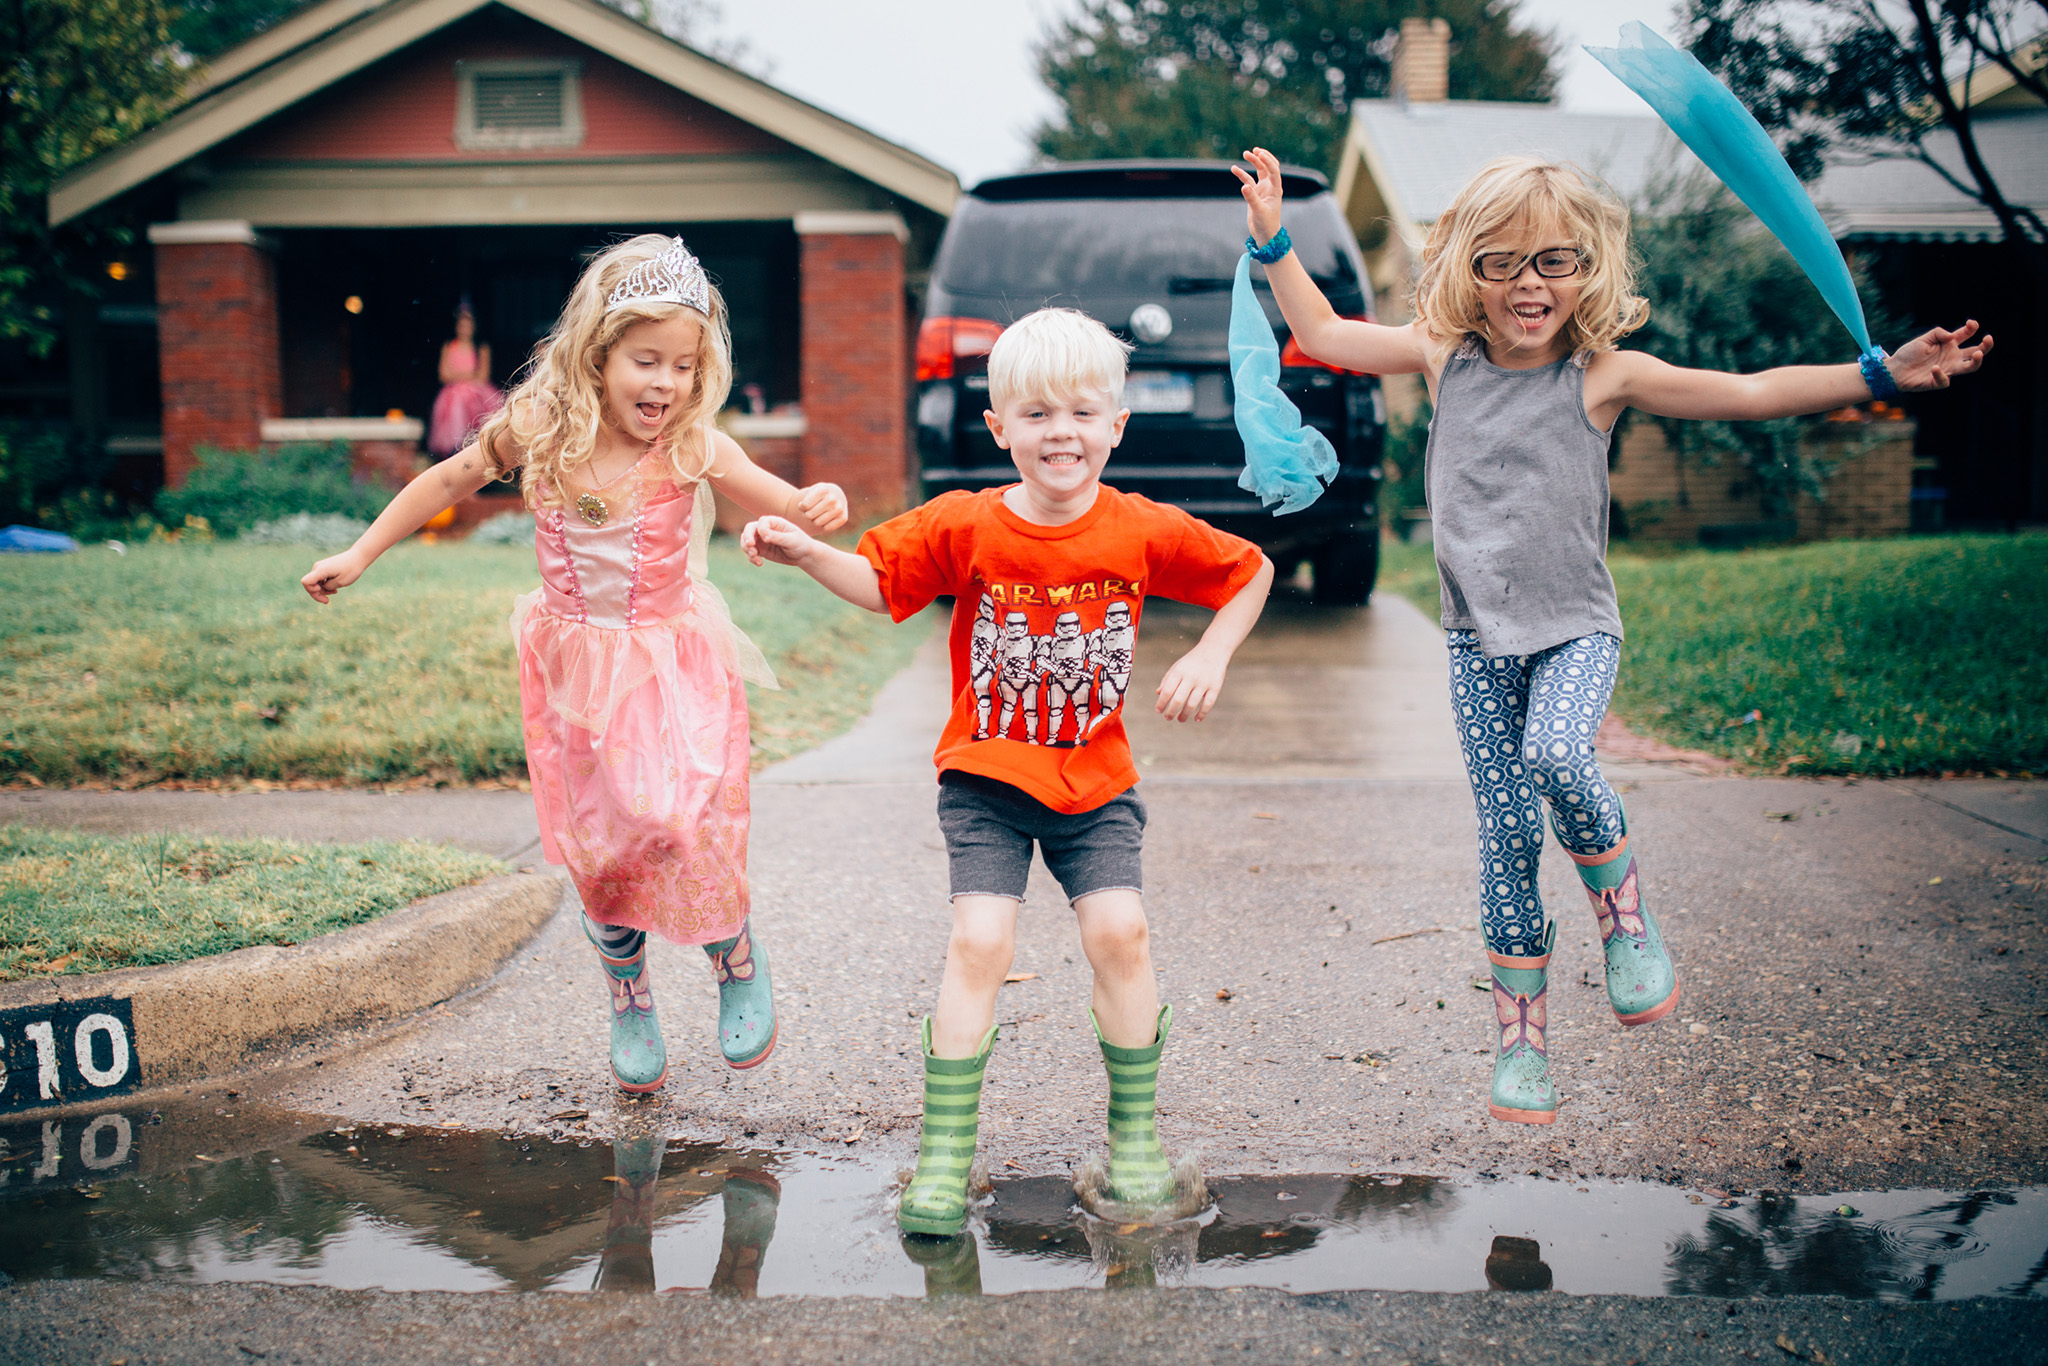 November 6: Rained out of photo shoots and rained into hanging out with the triplets!